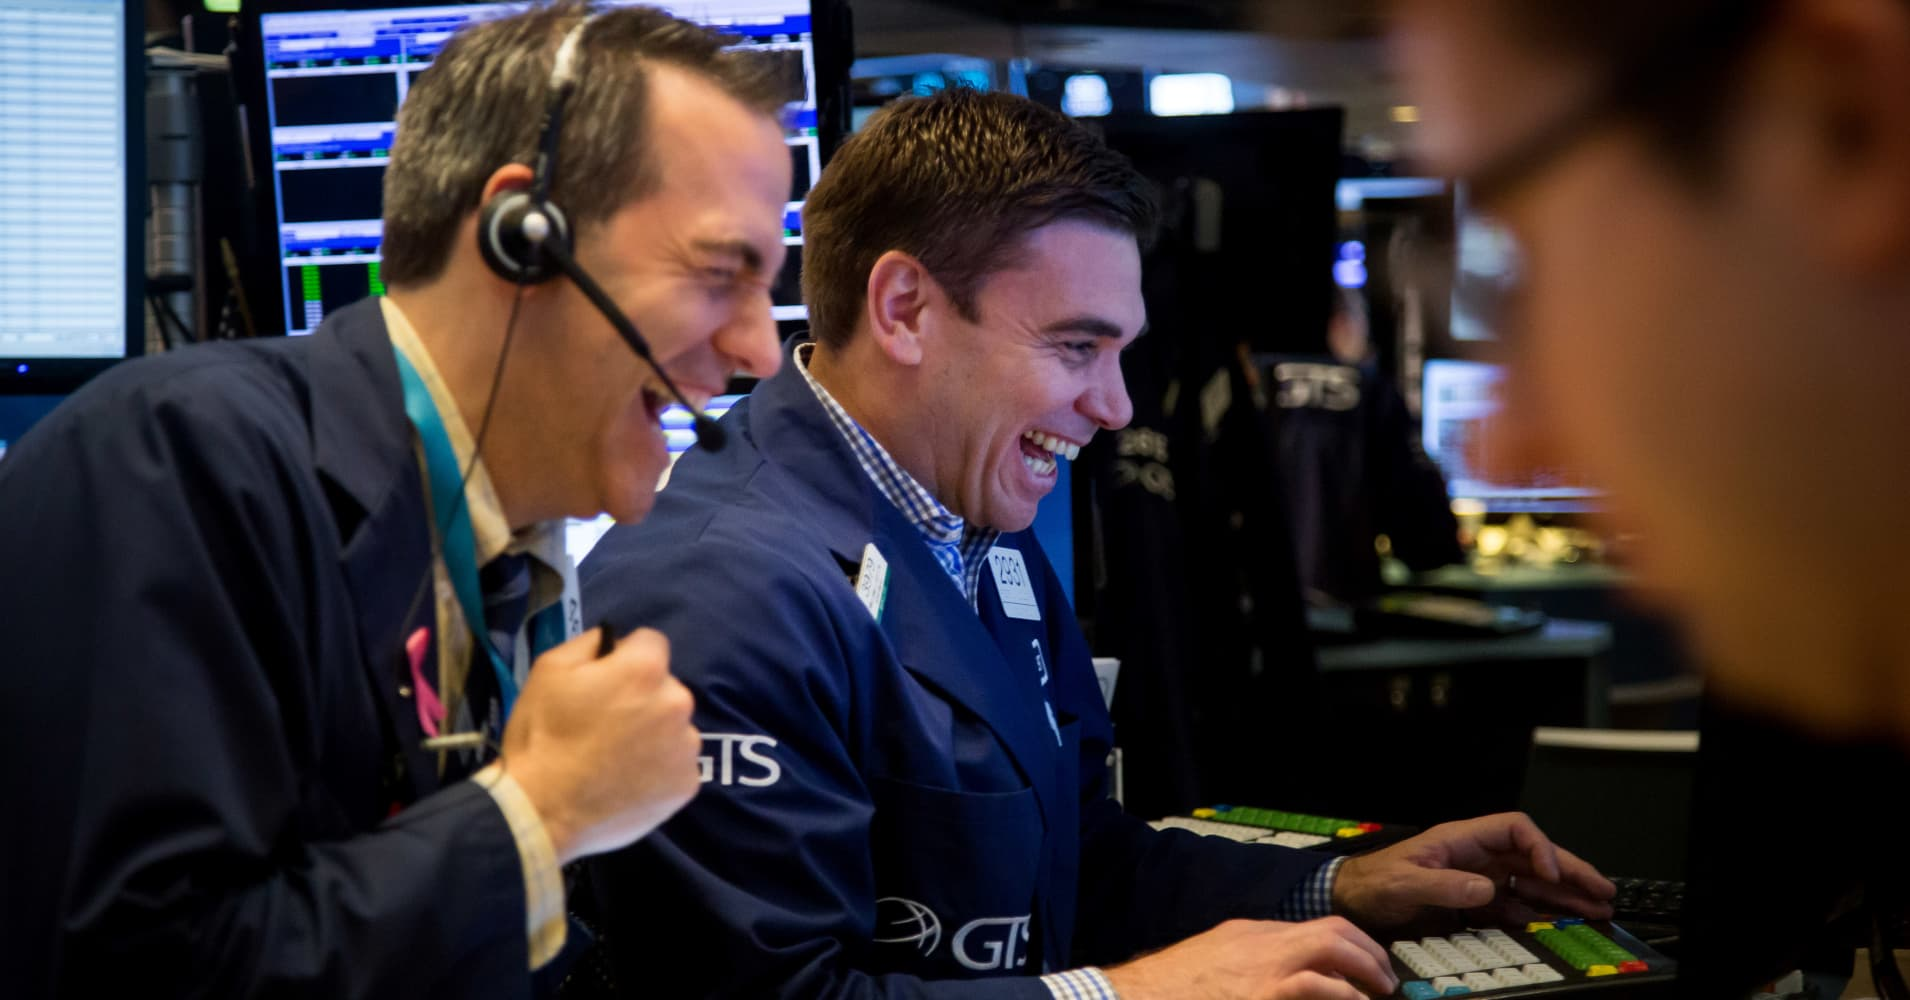 The stock market rally to start 2019 is one for the history books